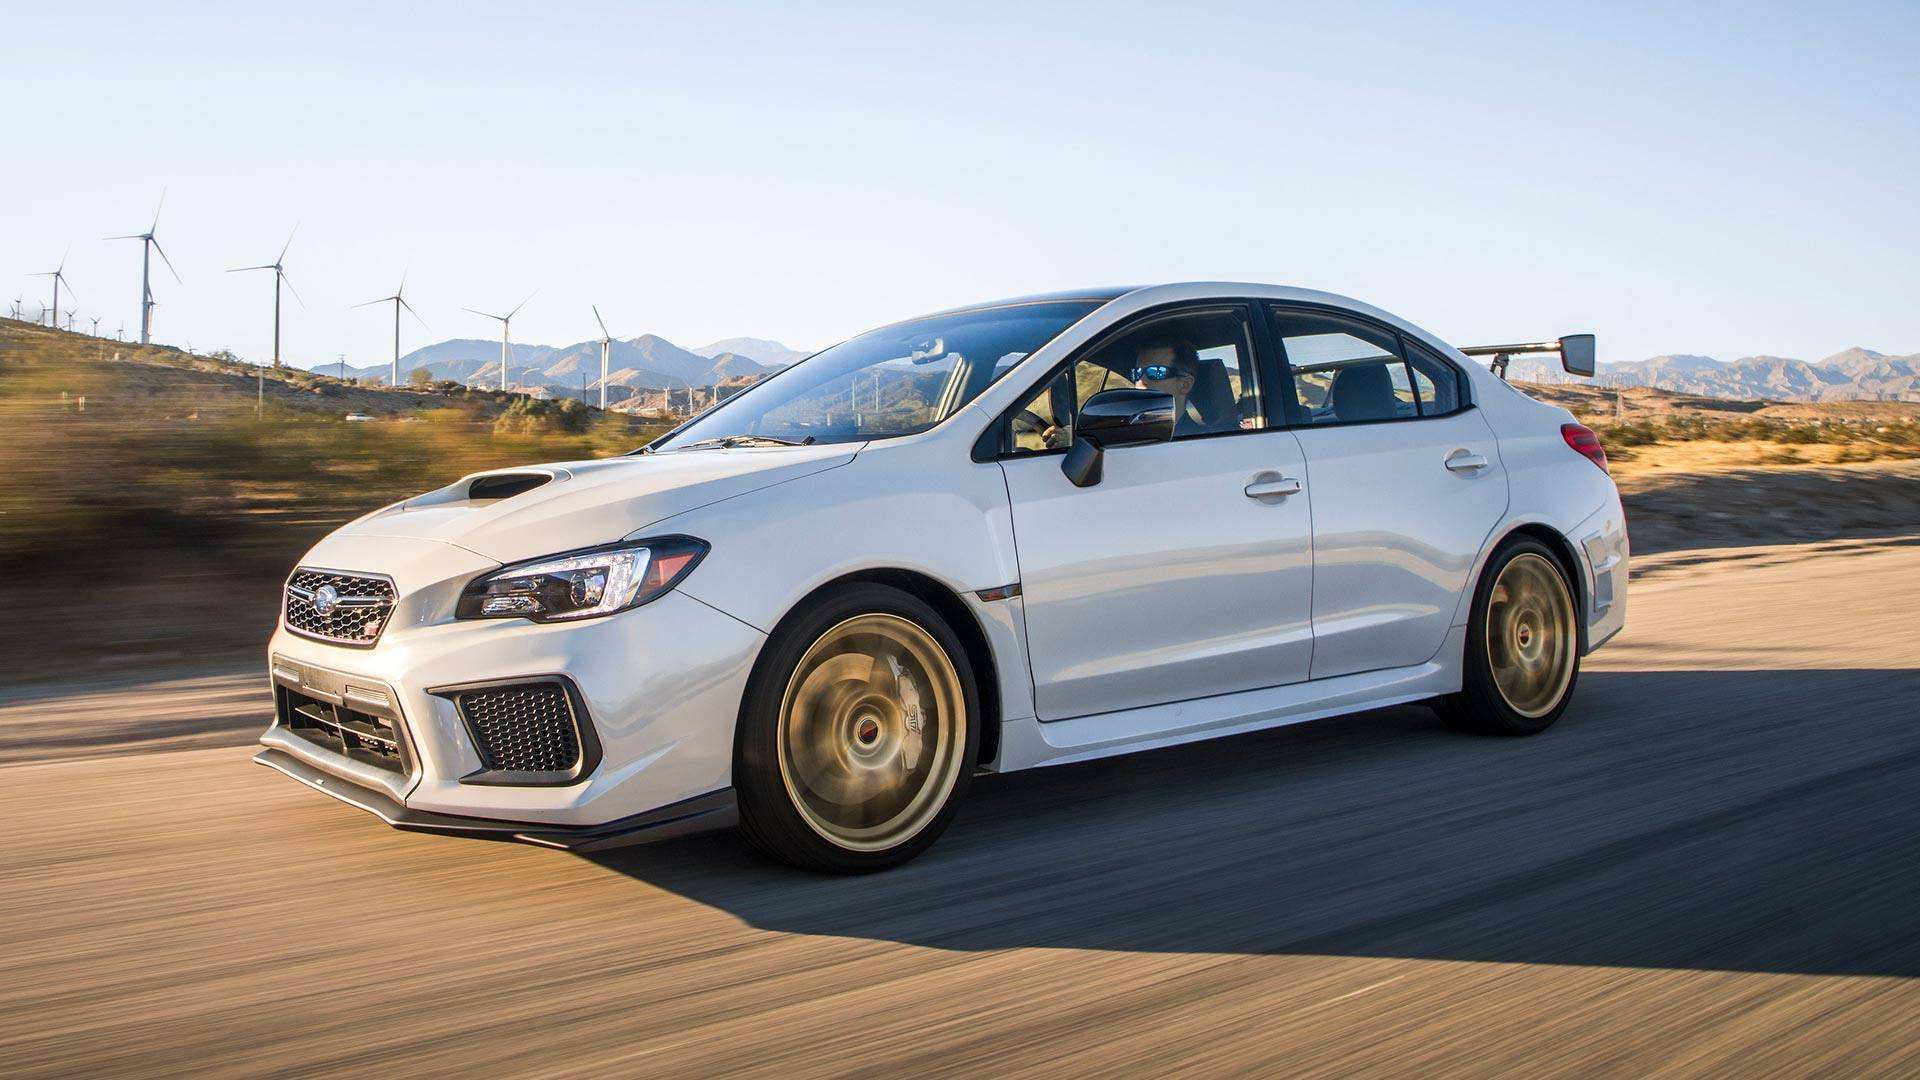 21 Concept of 2019 Subaru Sti Ra Overview by 2019 Subaru Sti Ra